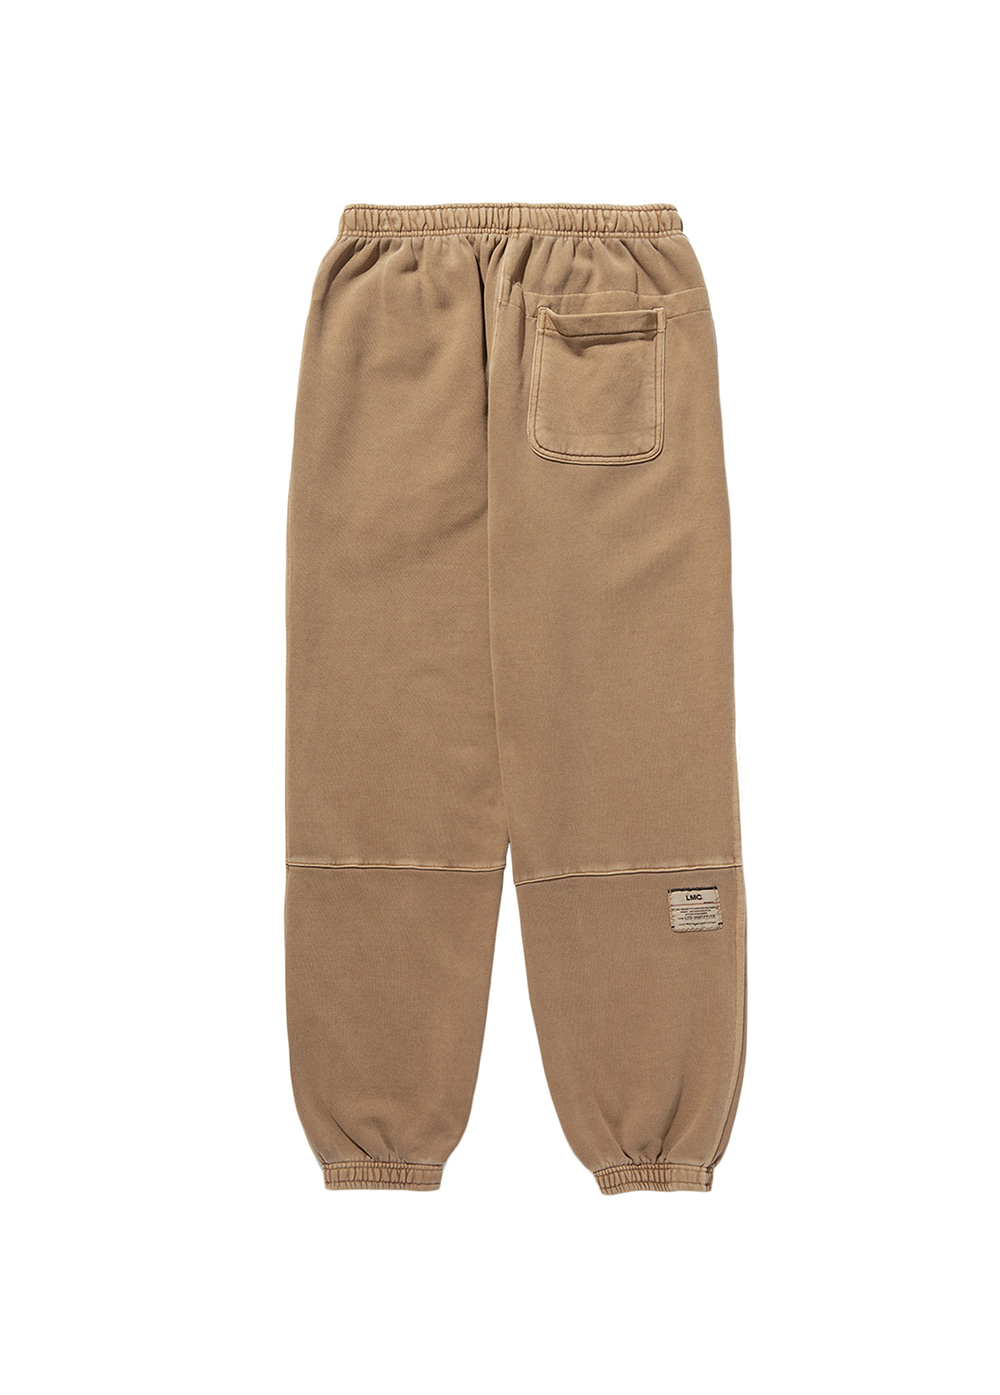 LMC LABEL SWEAT PANTS dk brown